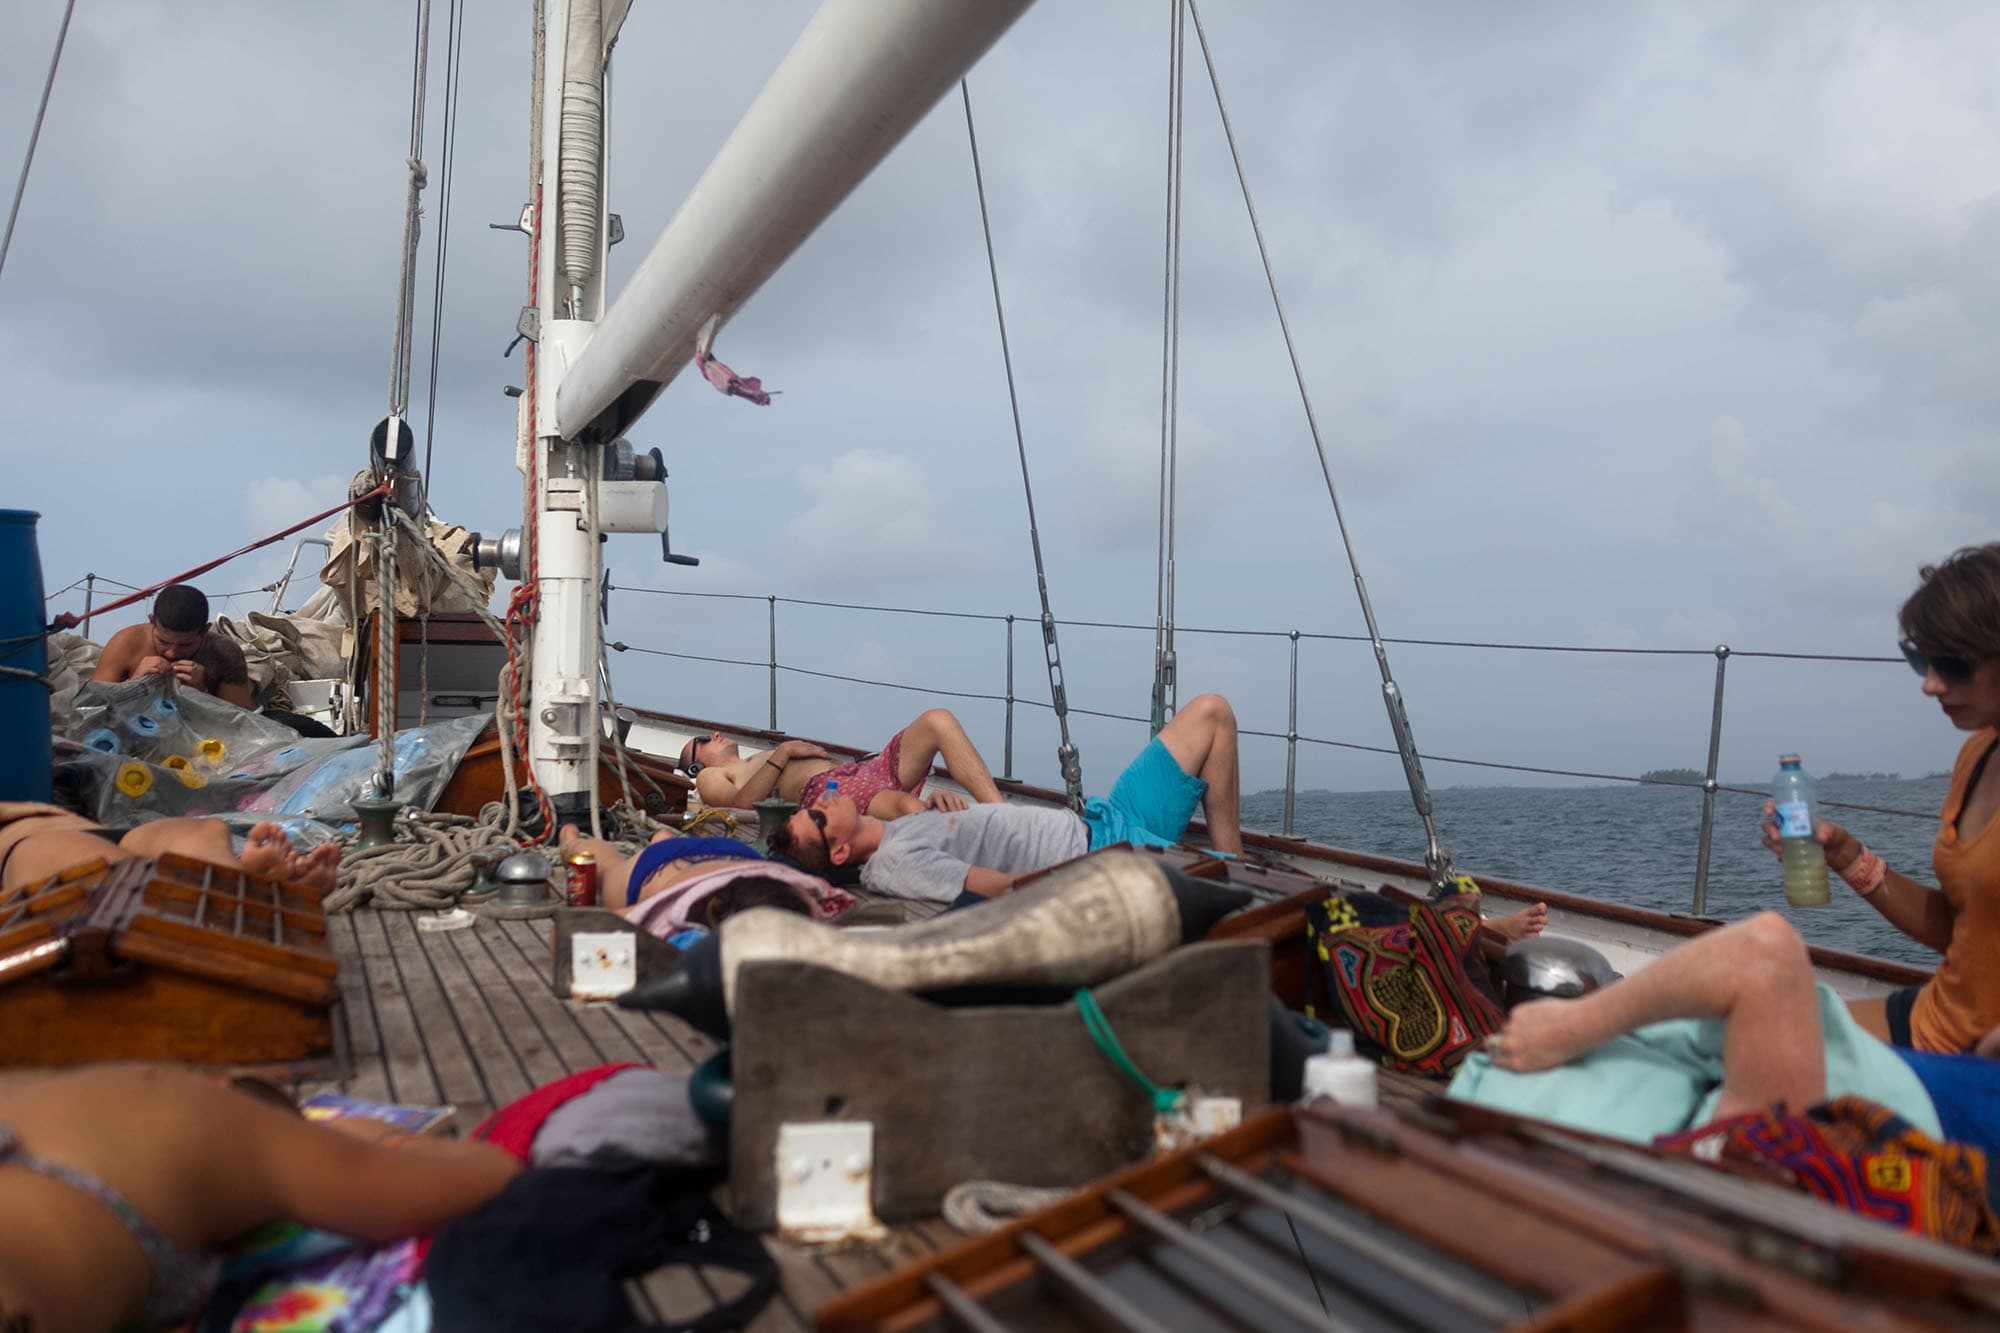 Sailing from Panama to Colombia. Sailing trip from Panama to Cartagena, Colombia on the Gitana III